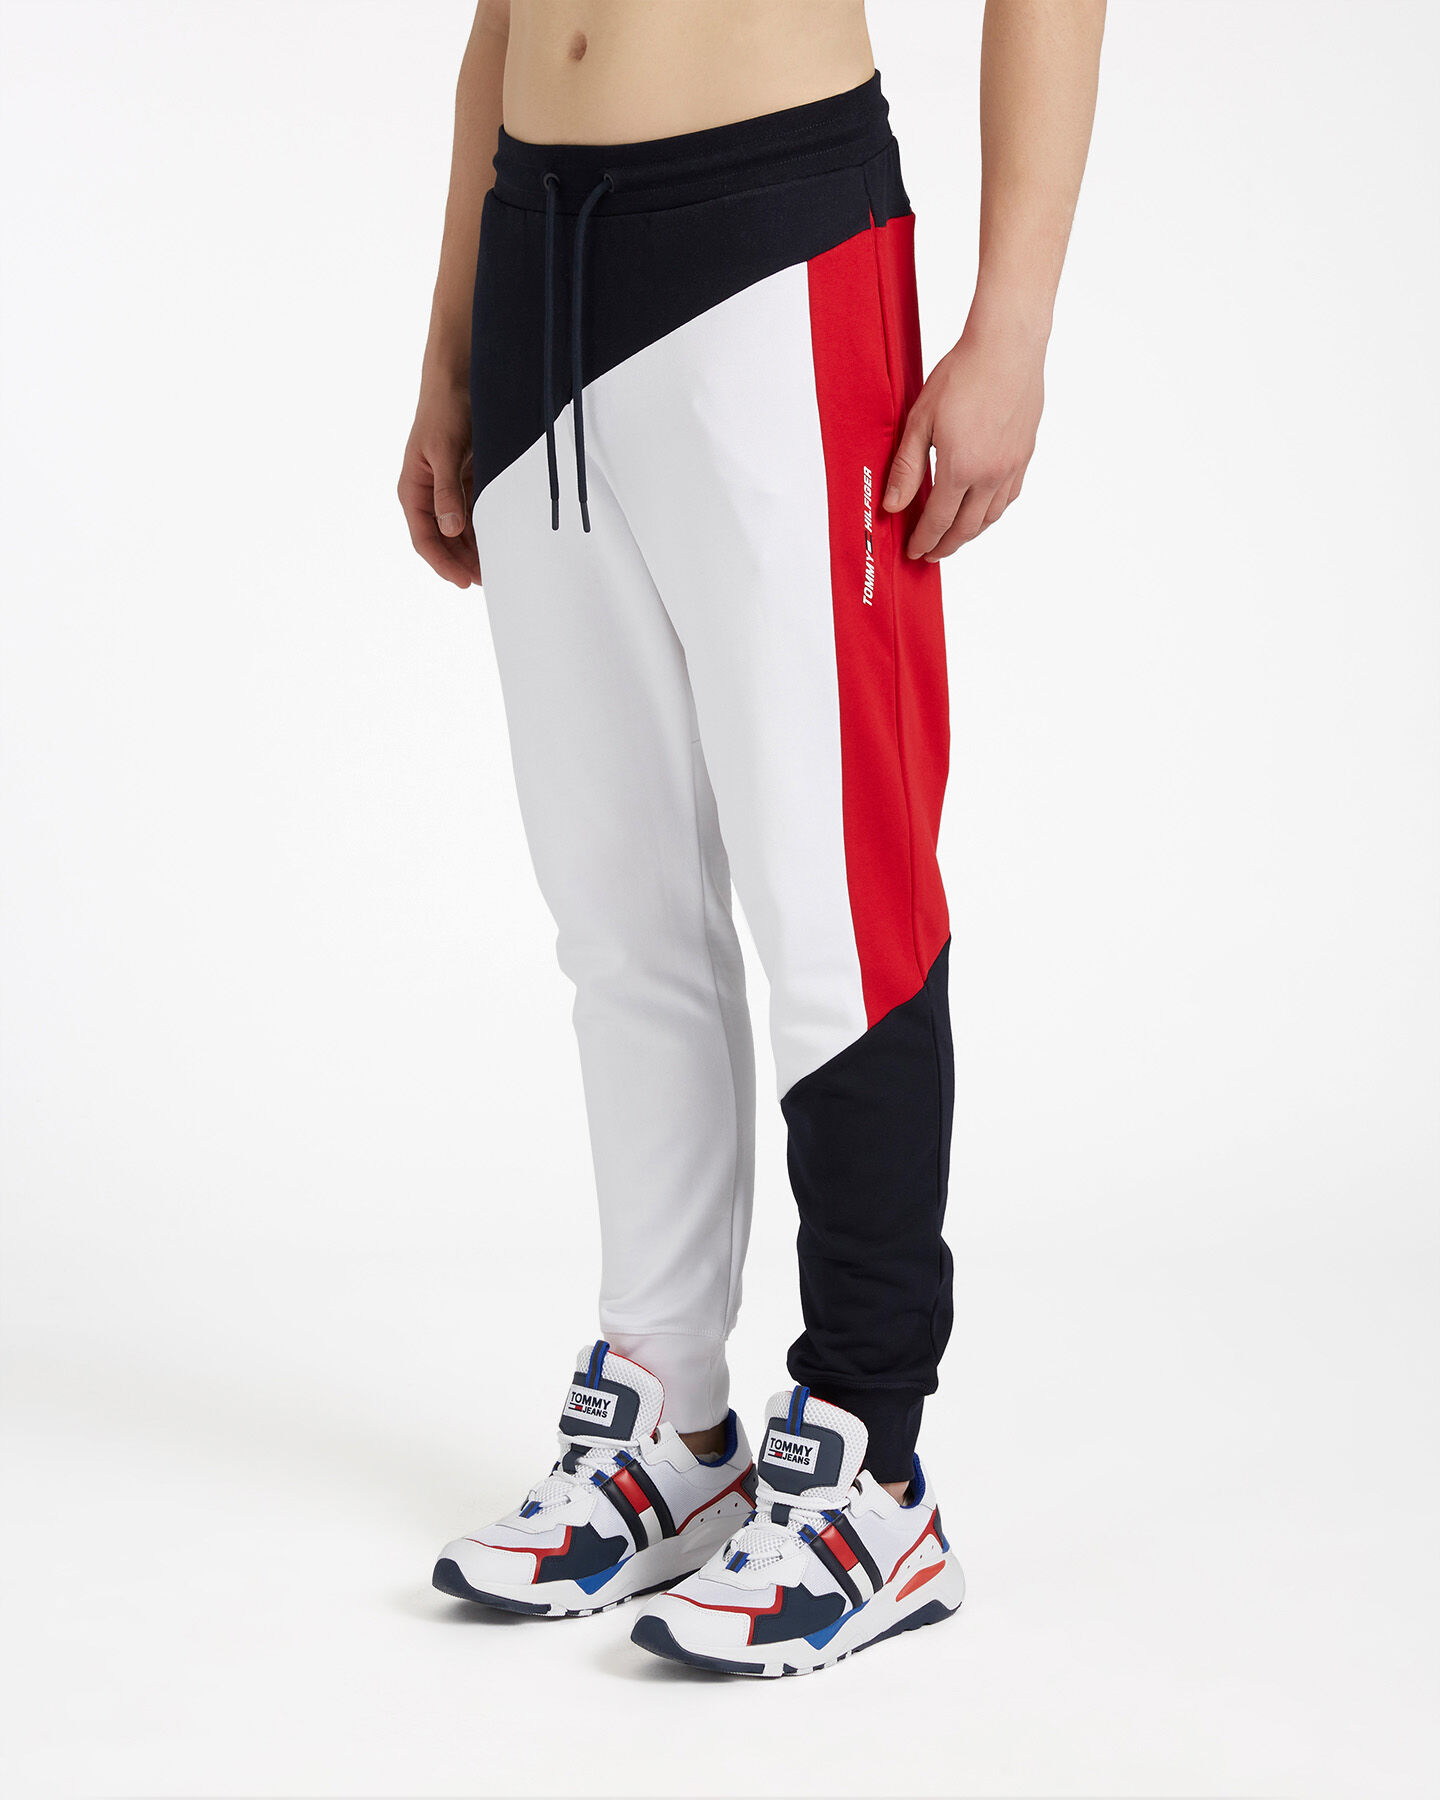 Pantalone TOMMY HILFIGER COLOR M S4089516 scatto 2